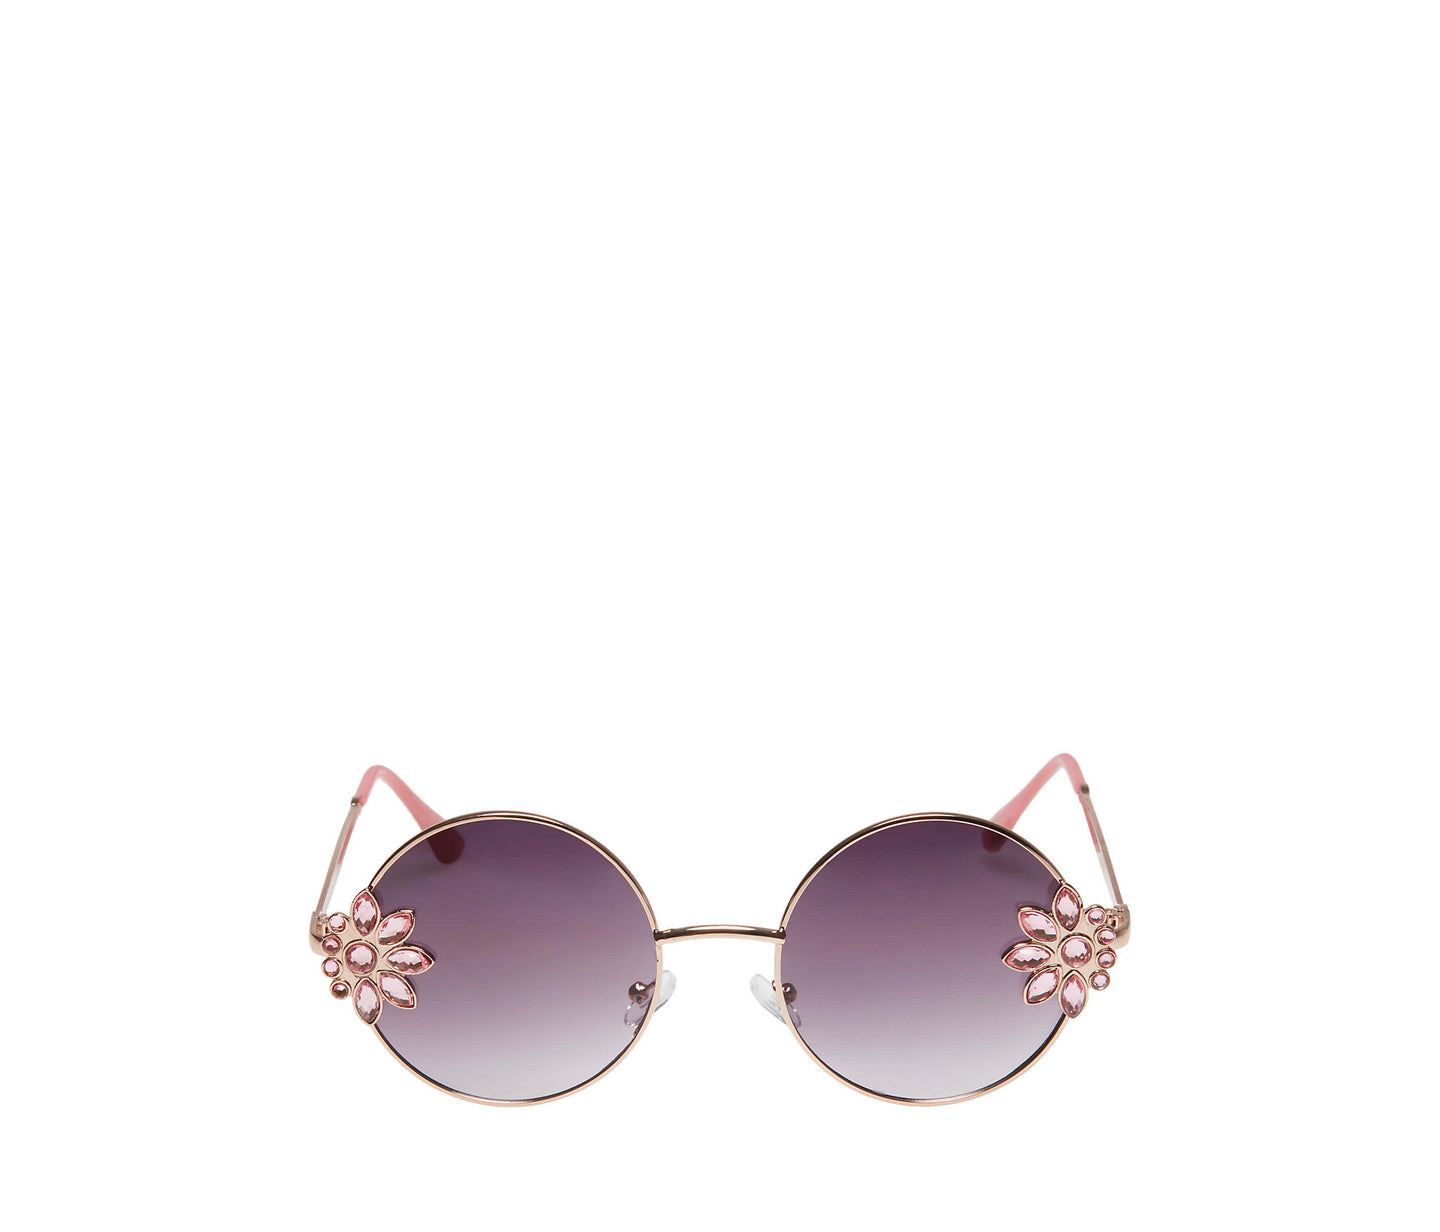 BETSEYS SIDE PIECE SUNGLASSES ROSE - ACCESSORIES - Betsey Johnson